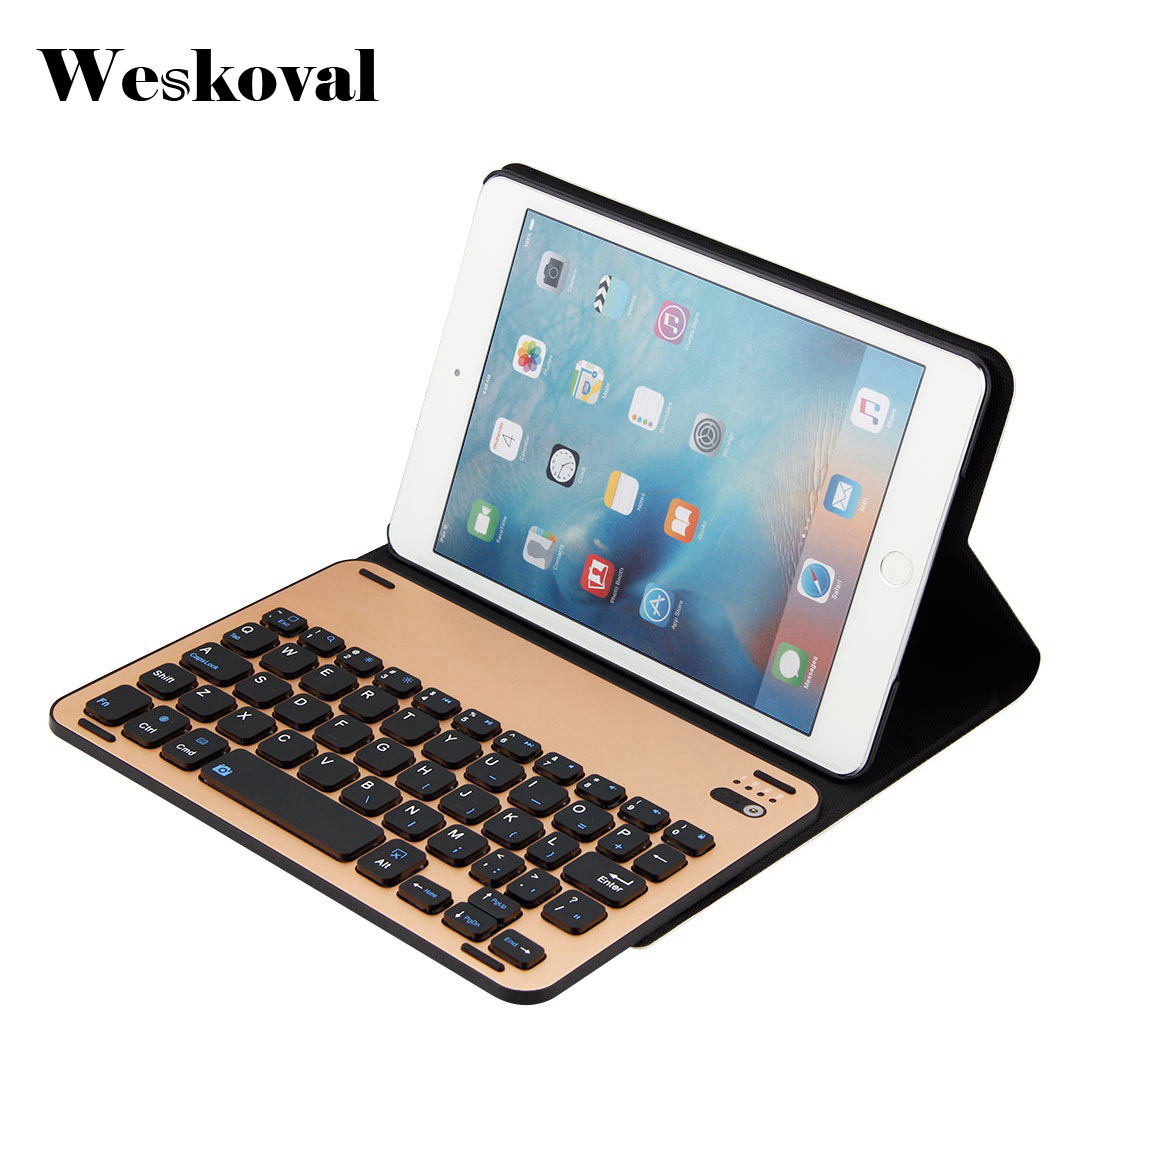 For iPad Mini 4 Wireless Bluetooth Keyboard Case For iPad Mini 4 7.9 inch Tablet Flip Leather Stand Cover Capa Fundas+Stylus for ipad mini 4 case tablet cover luxury pu leather protective stand holder 7 9 inch for apple ipad mini 4 flip case mimi4 capa